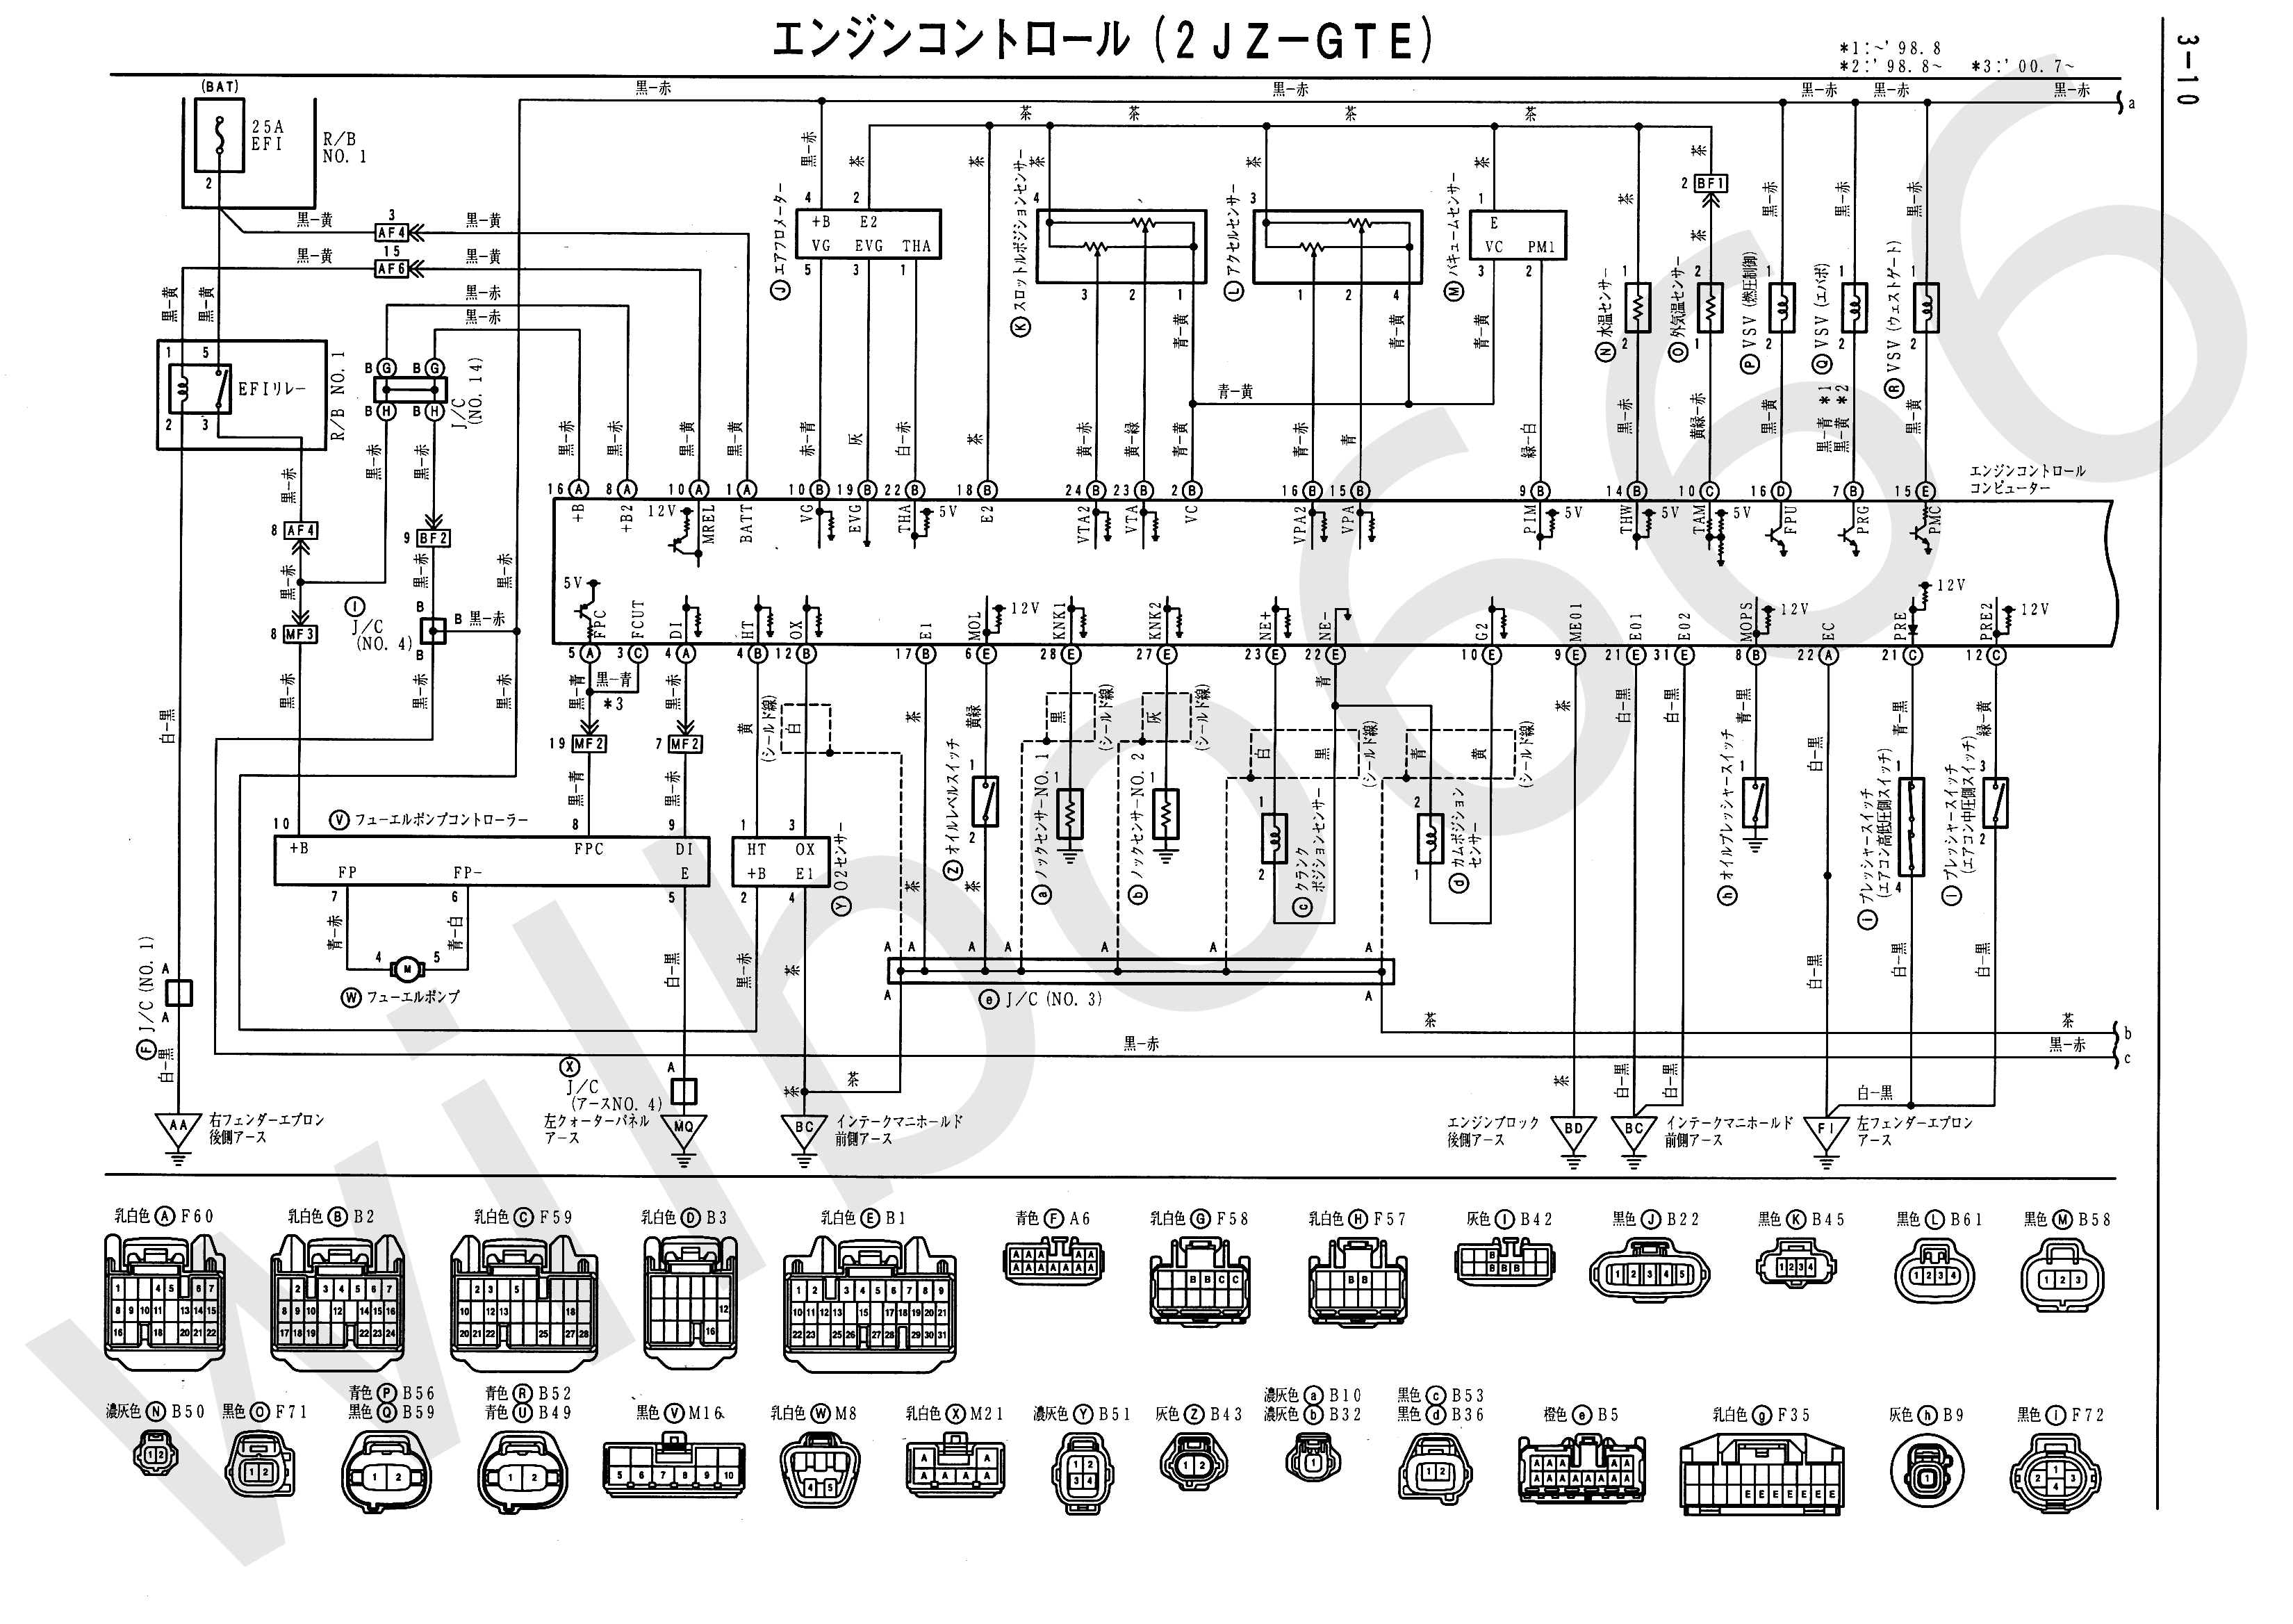 Toyota Estima Fuse Box Layout In English 40 Wiring Diagram Images 1991 Previa Jzs161 Electrical 6748505 3 10 Wilbo666 2jz Gte Vvti Aristo Engine